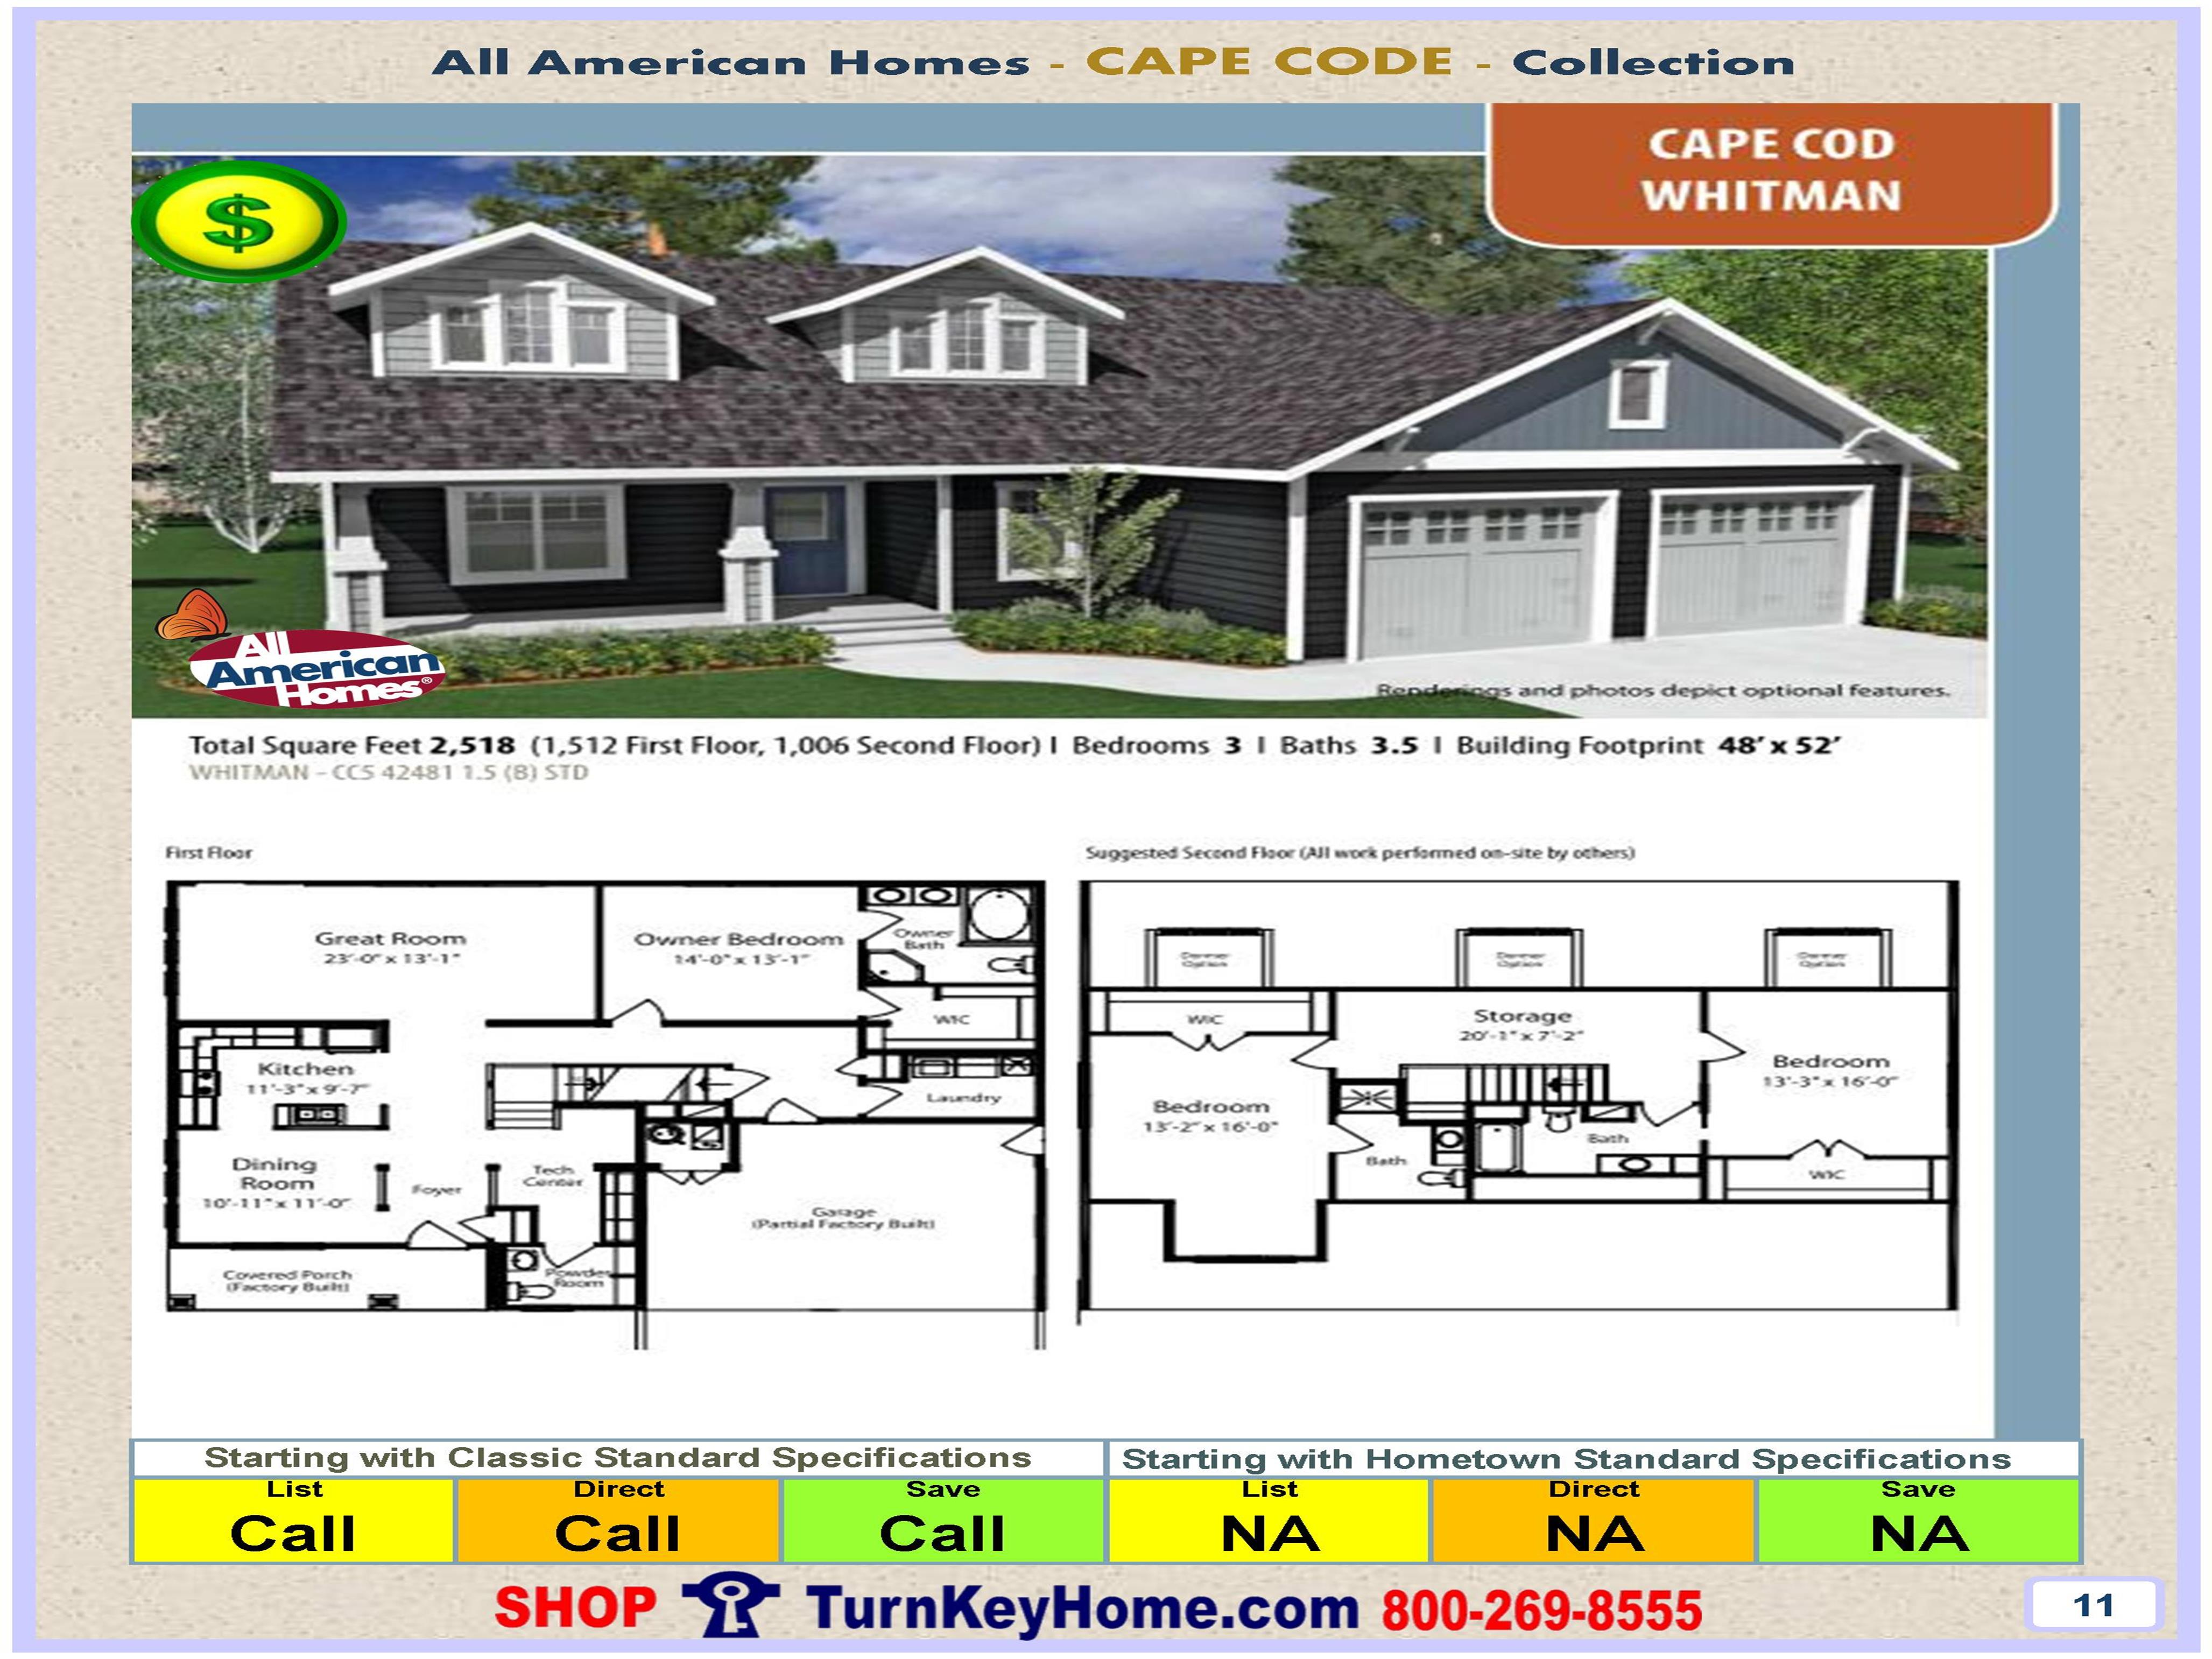 modular home all american homes cape cod whitman plan price modular home all american homes cape cod whitman plan price modular homes manufactured homes priced